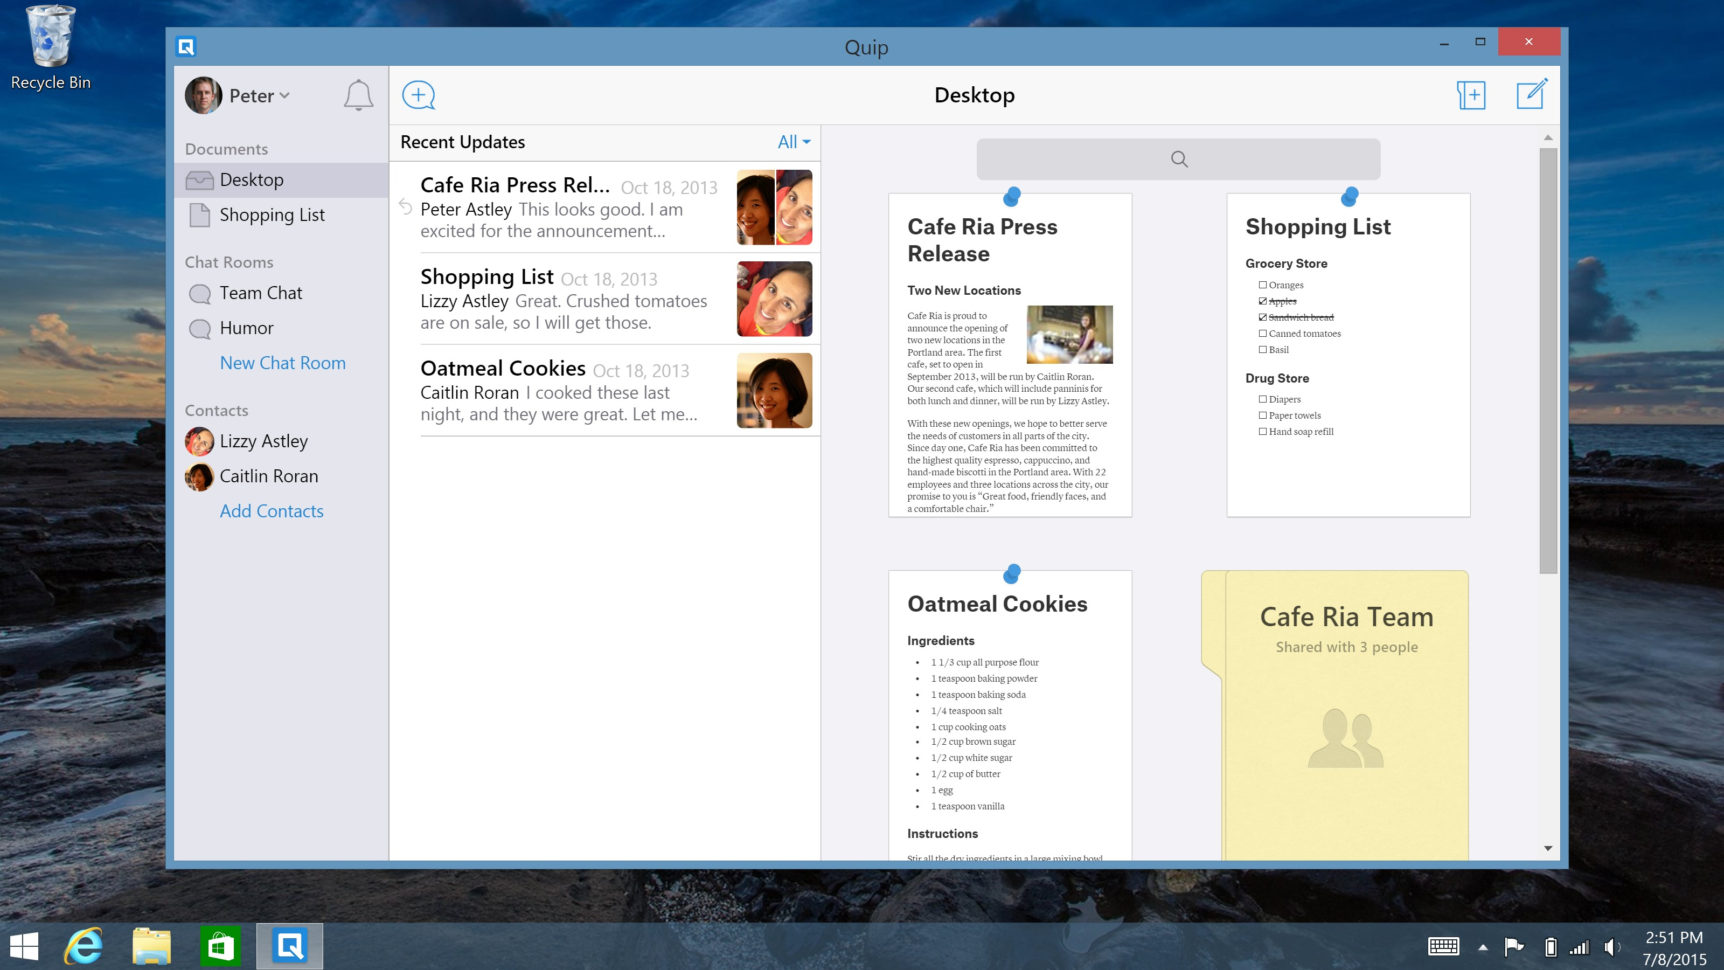 Windows Spreadsheet App Within Quip Takes On Microsoft Office With Desktop Apps For Windows, Mac